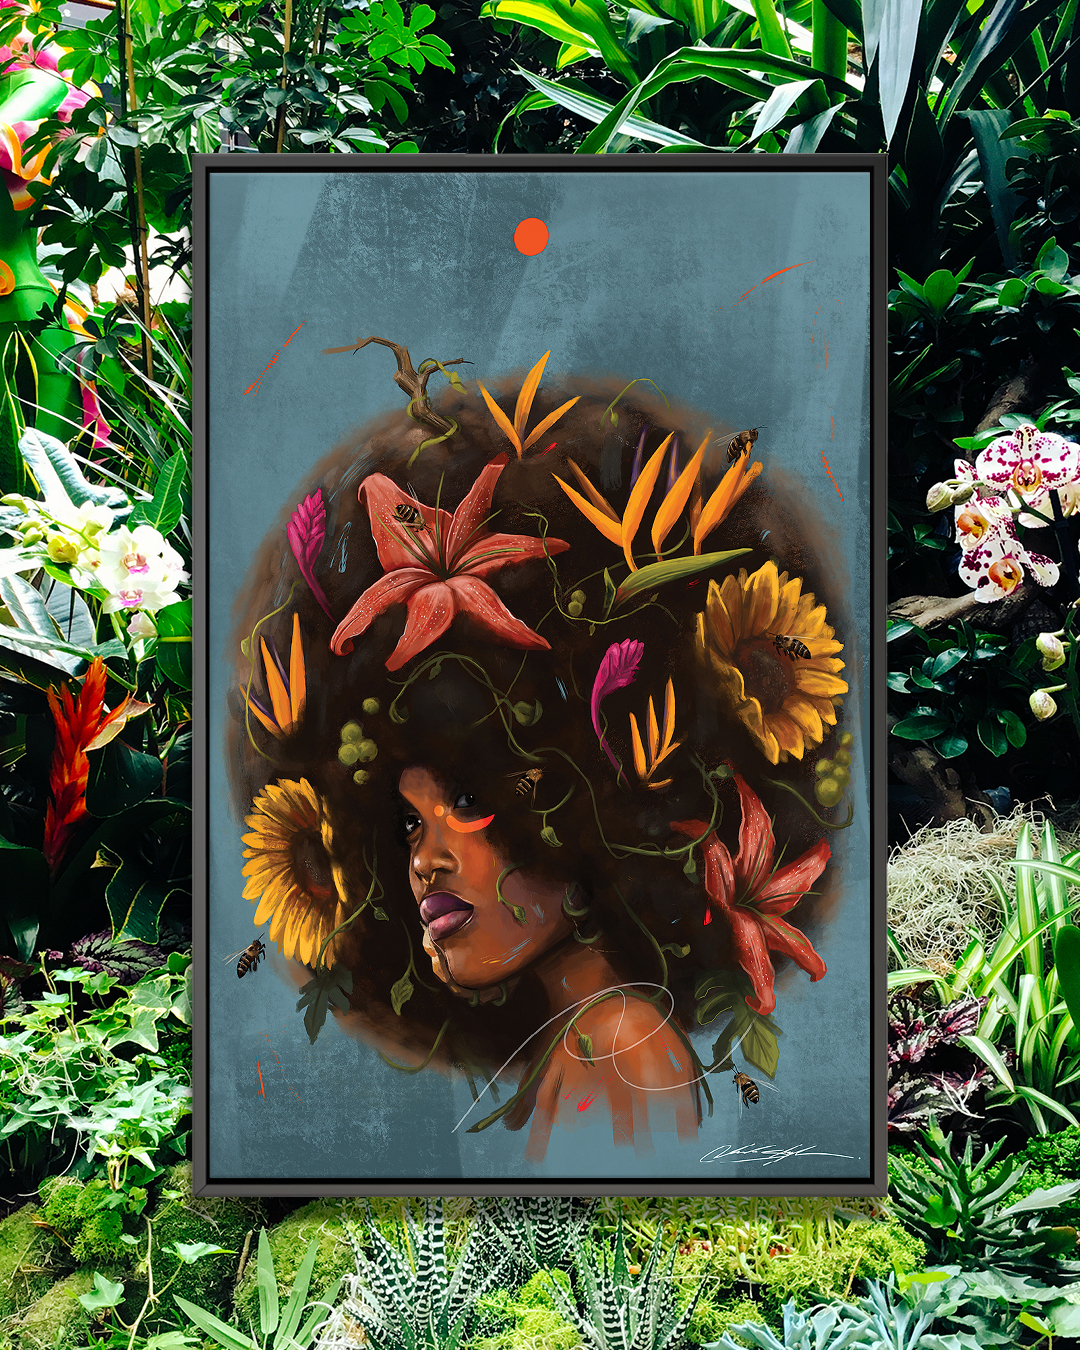 """Cocoa Butter Blossoms"" by Chuck Styles shows a woman with sunflowers and foliage in her afro while bees fly around her."